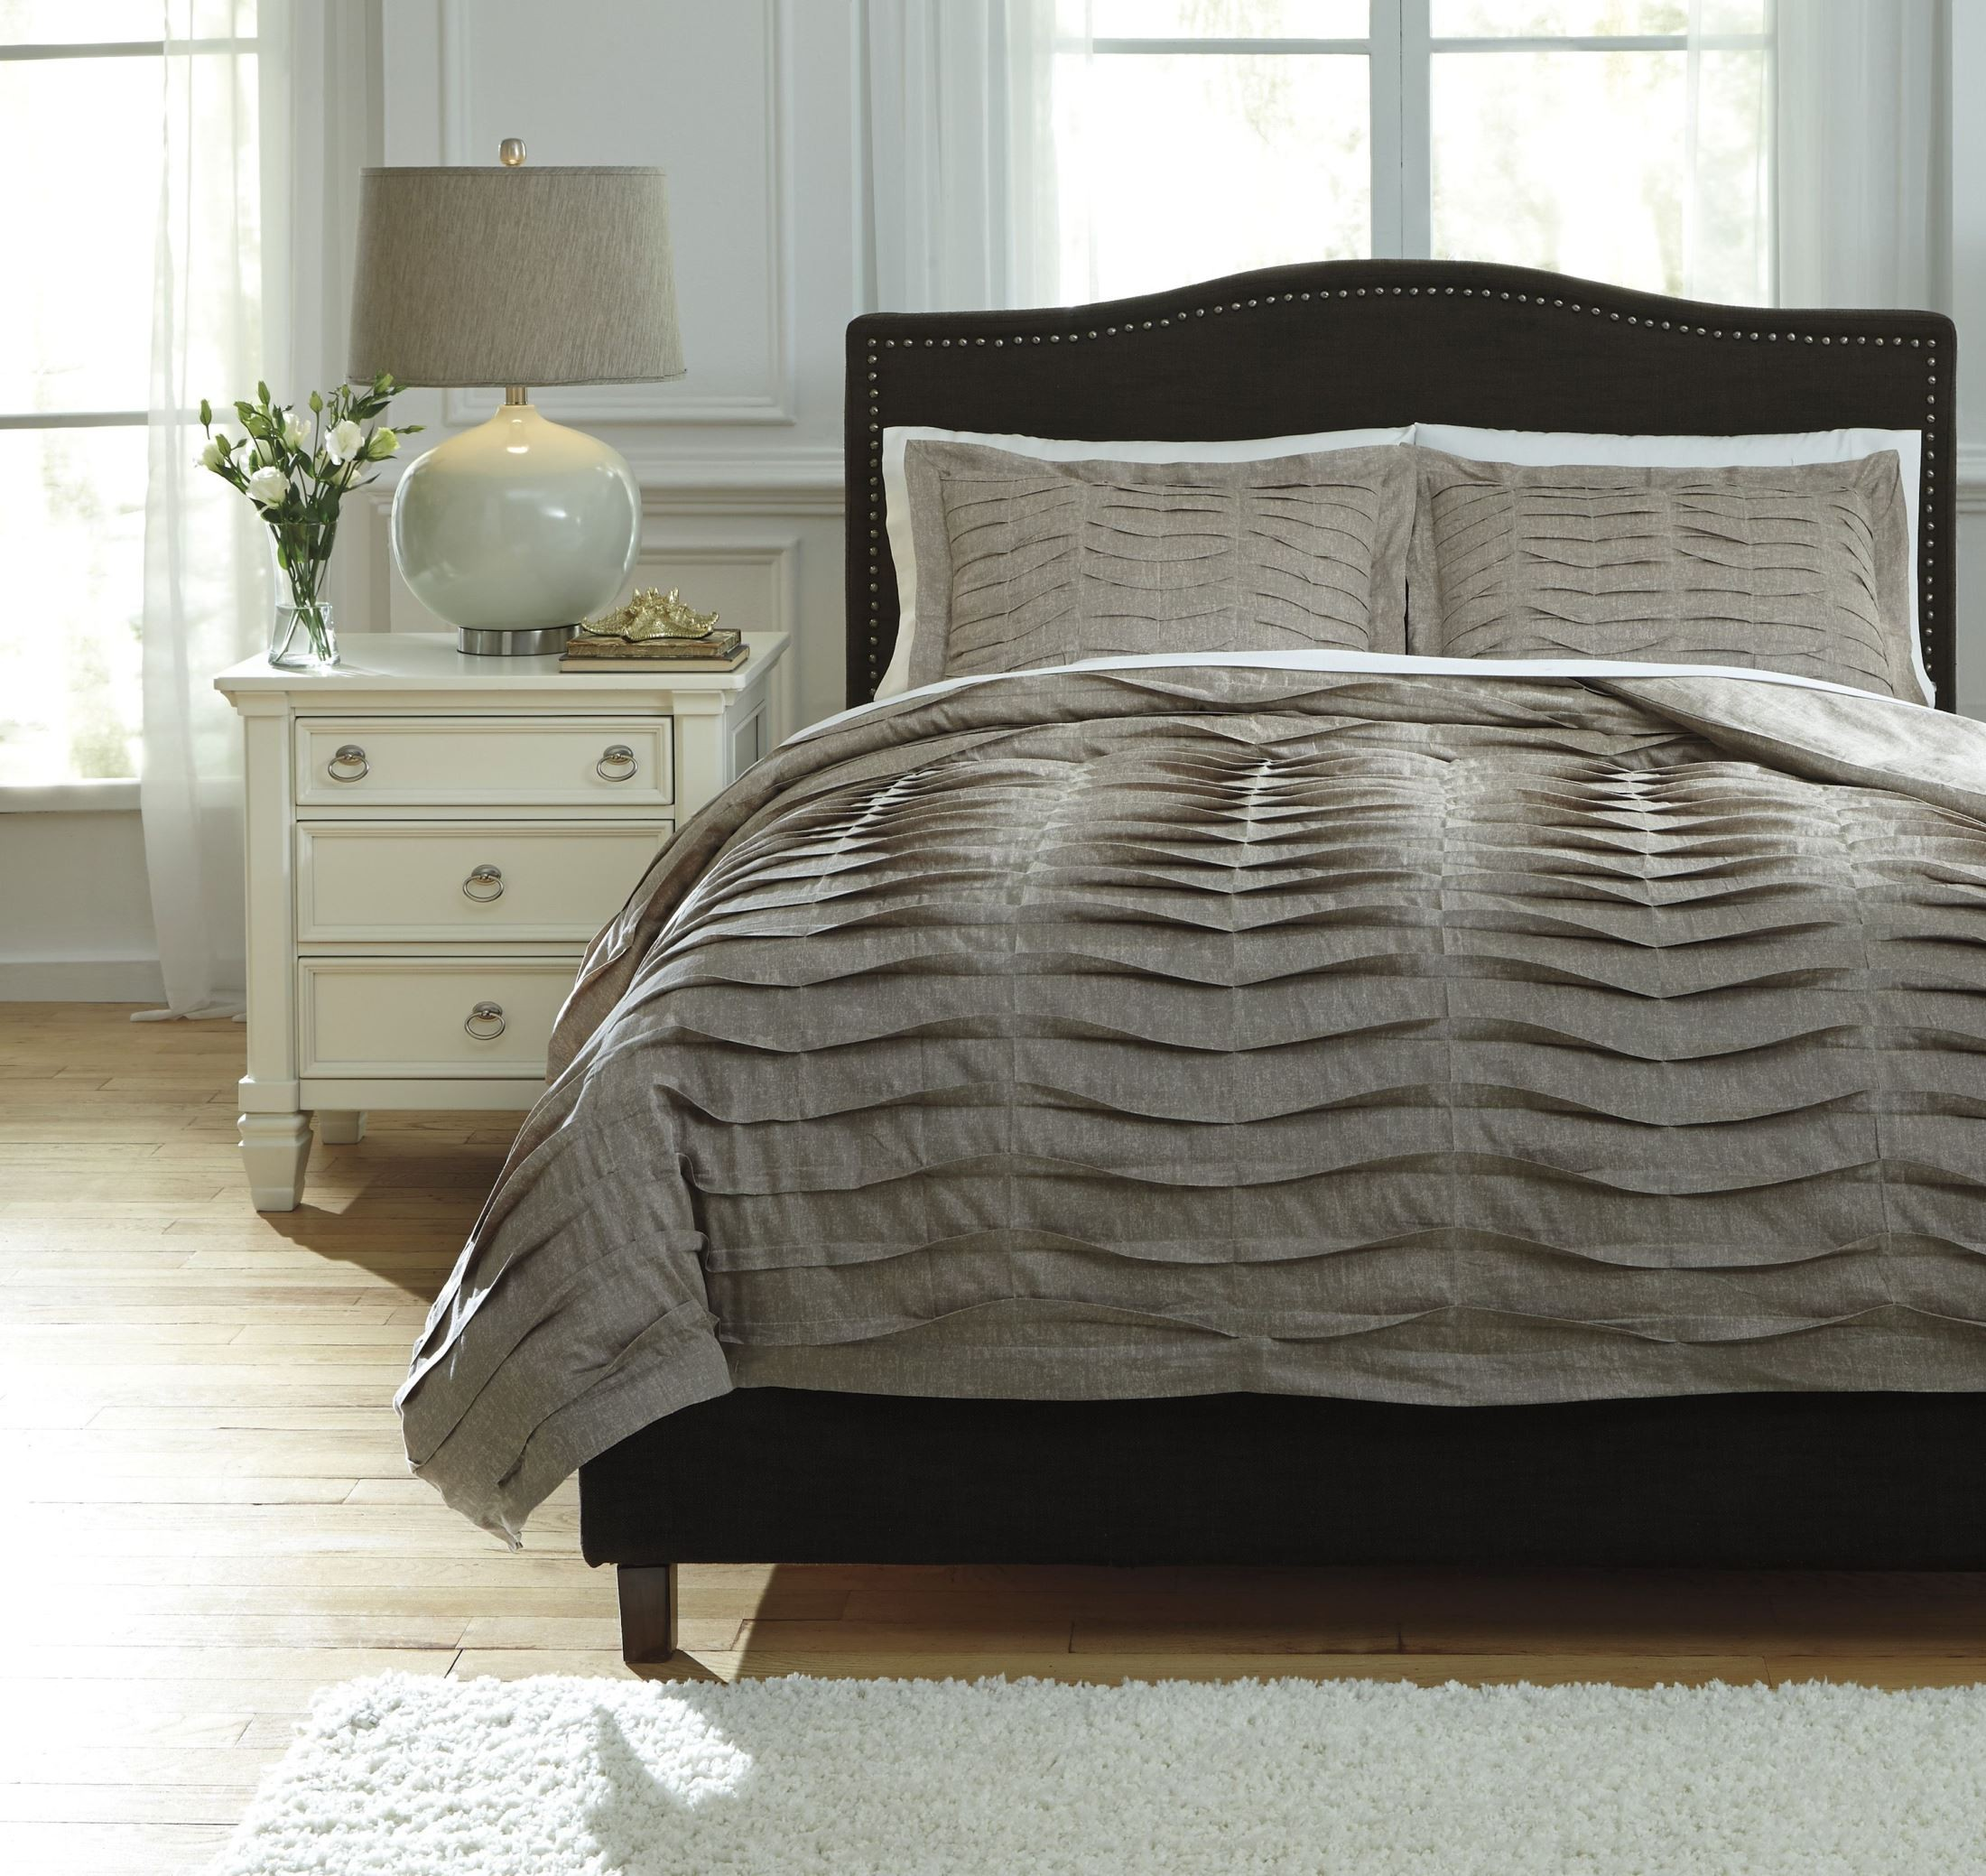 Voltos Dark Brown King Duvet Cover Set From Ashley